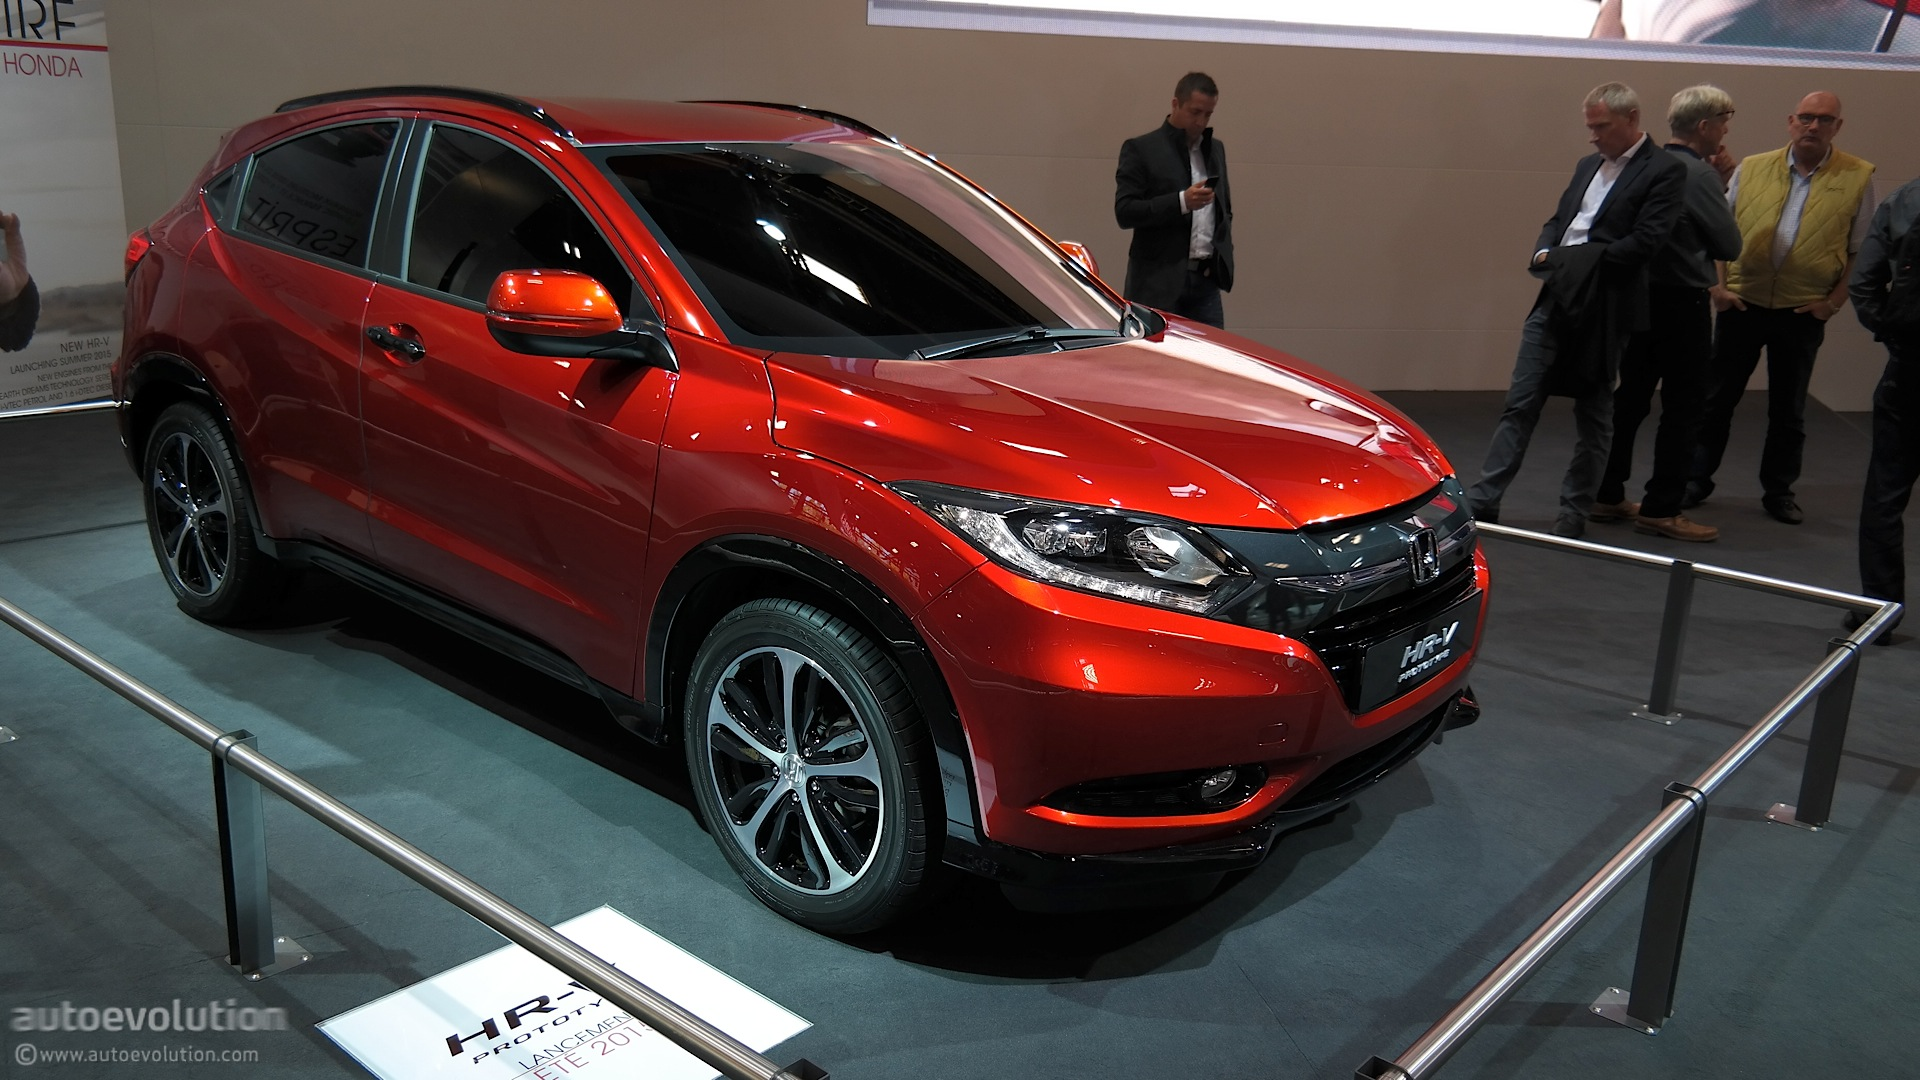 2015 honda hr v is compact and stylish at paris 2014 debut live photos autoevolution. Black Bedroom Furniture Sets. Home Design Ideas